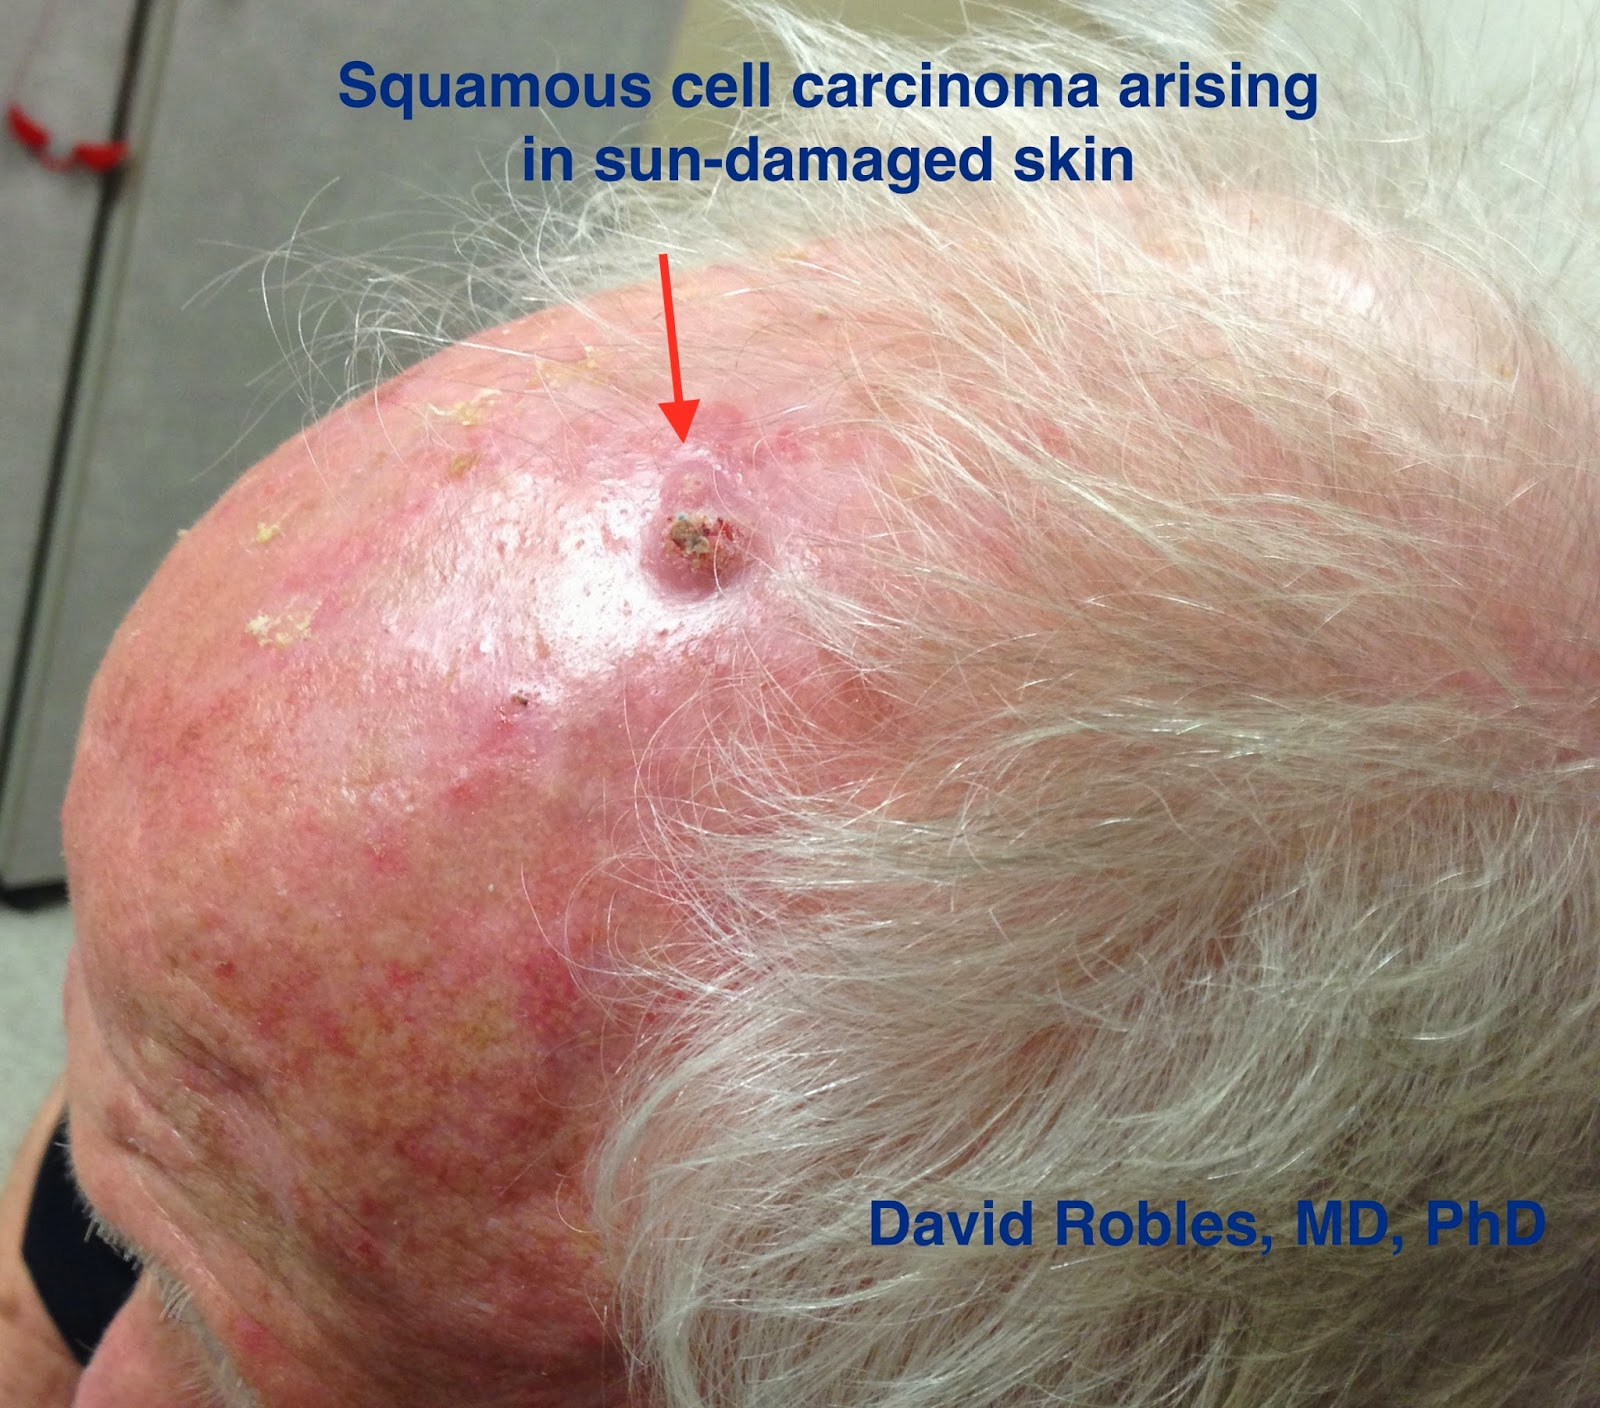 squamous cell carcinoma is the second most common skin cancer, Human Body